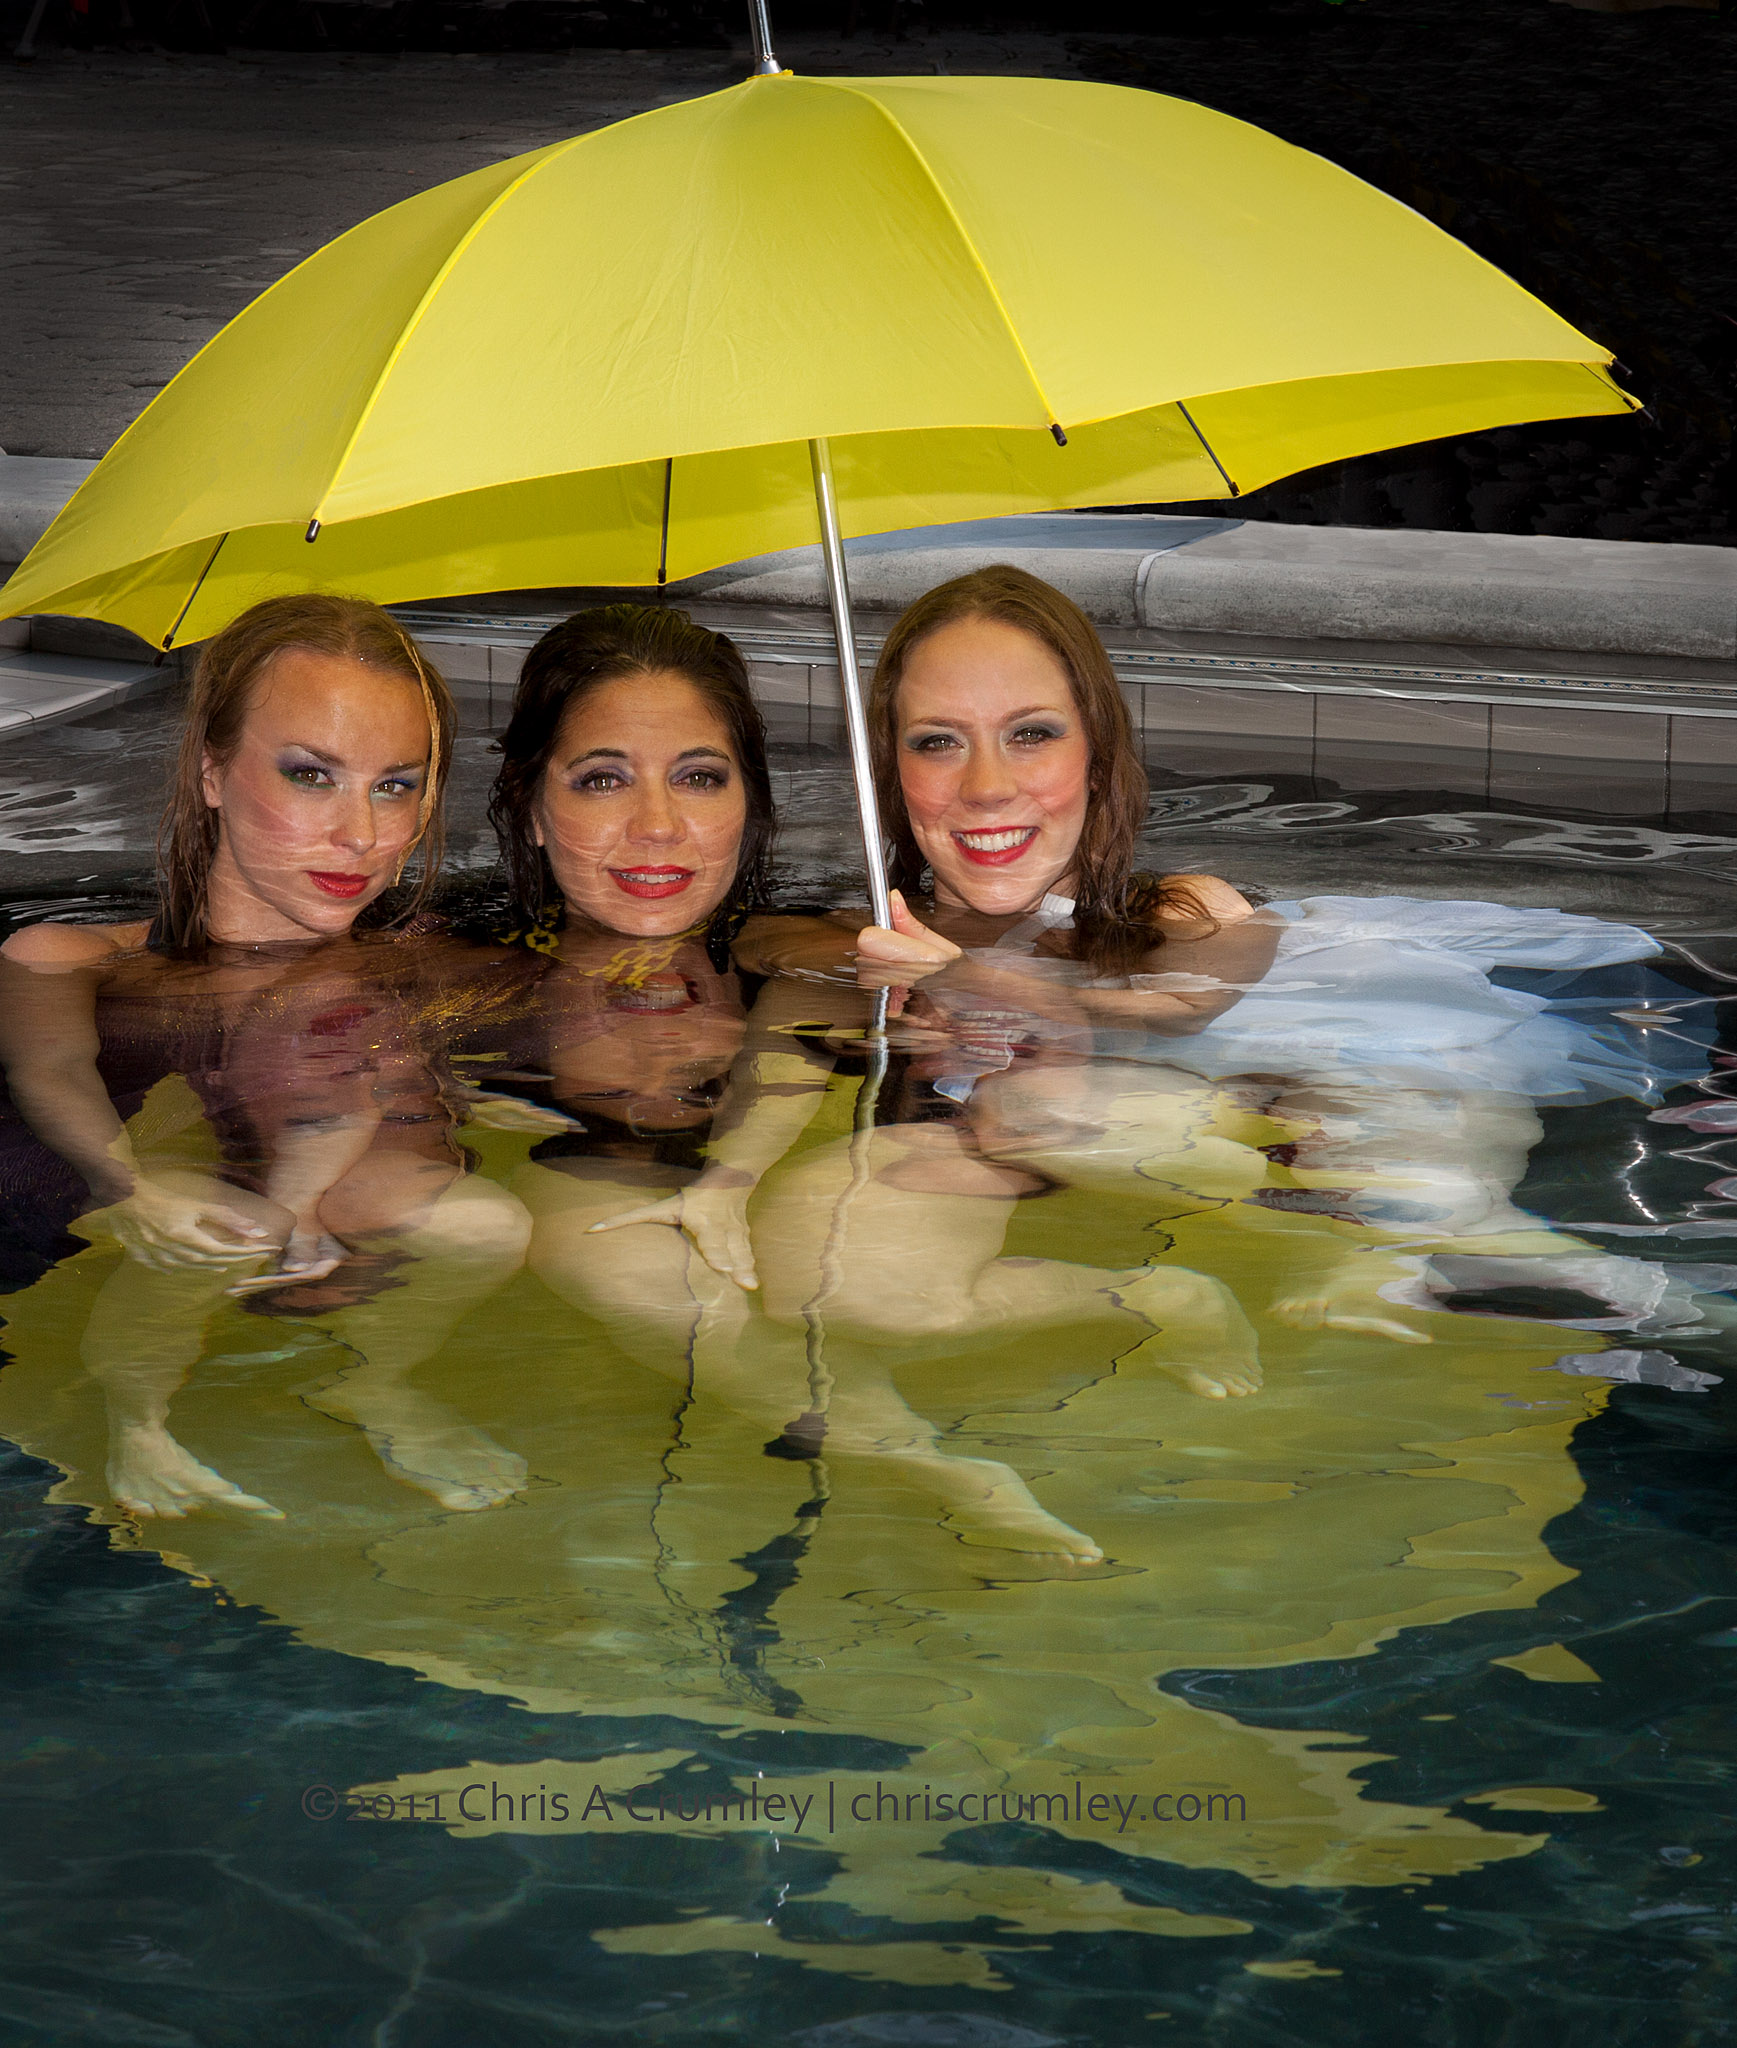 BODYART Dancers With Yellow Umbrella